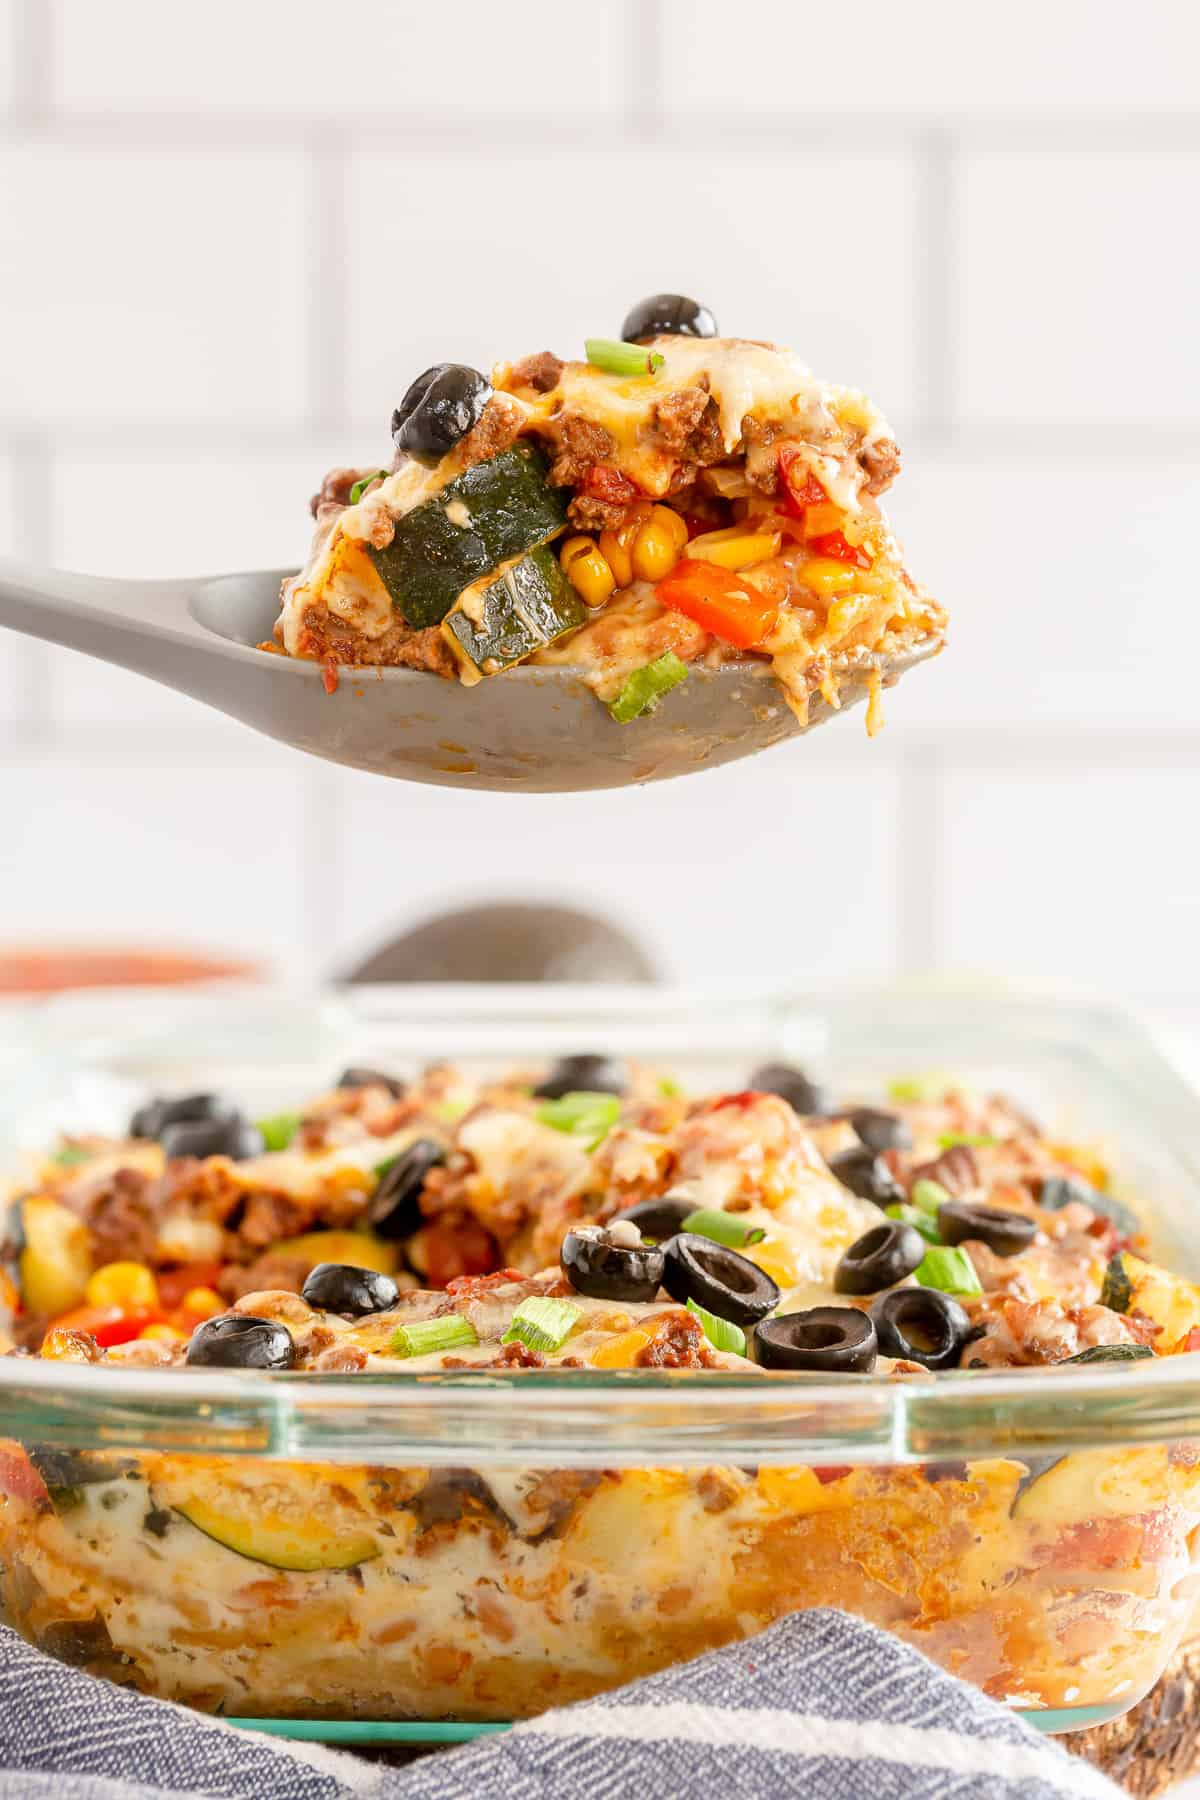 A spoon with a scoop of ground beef and vegetables hovers over a casserole dish.